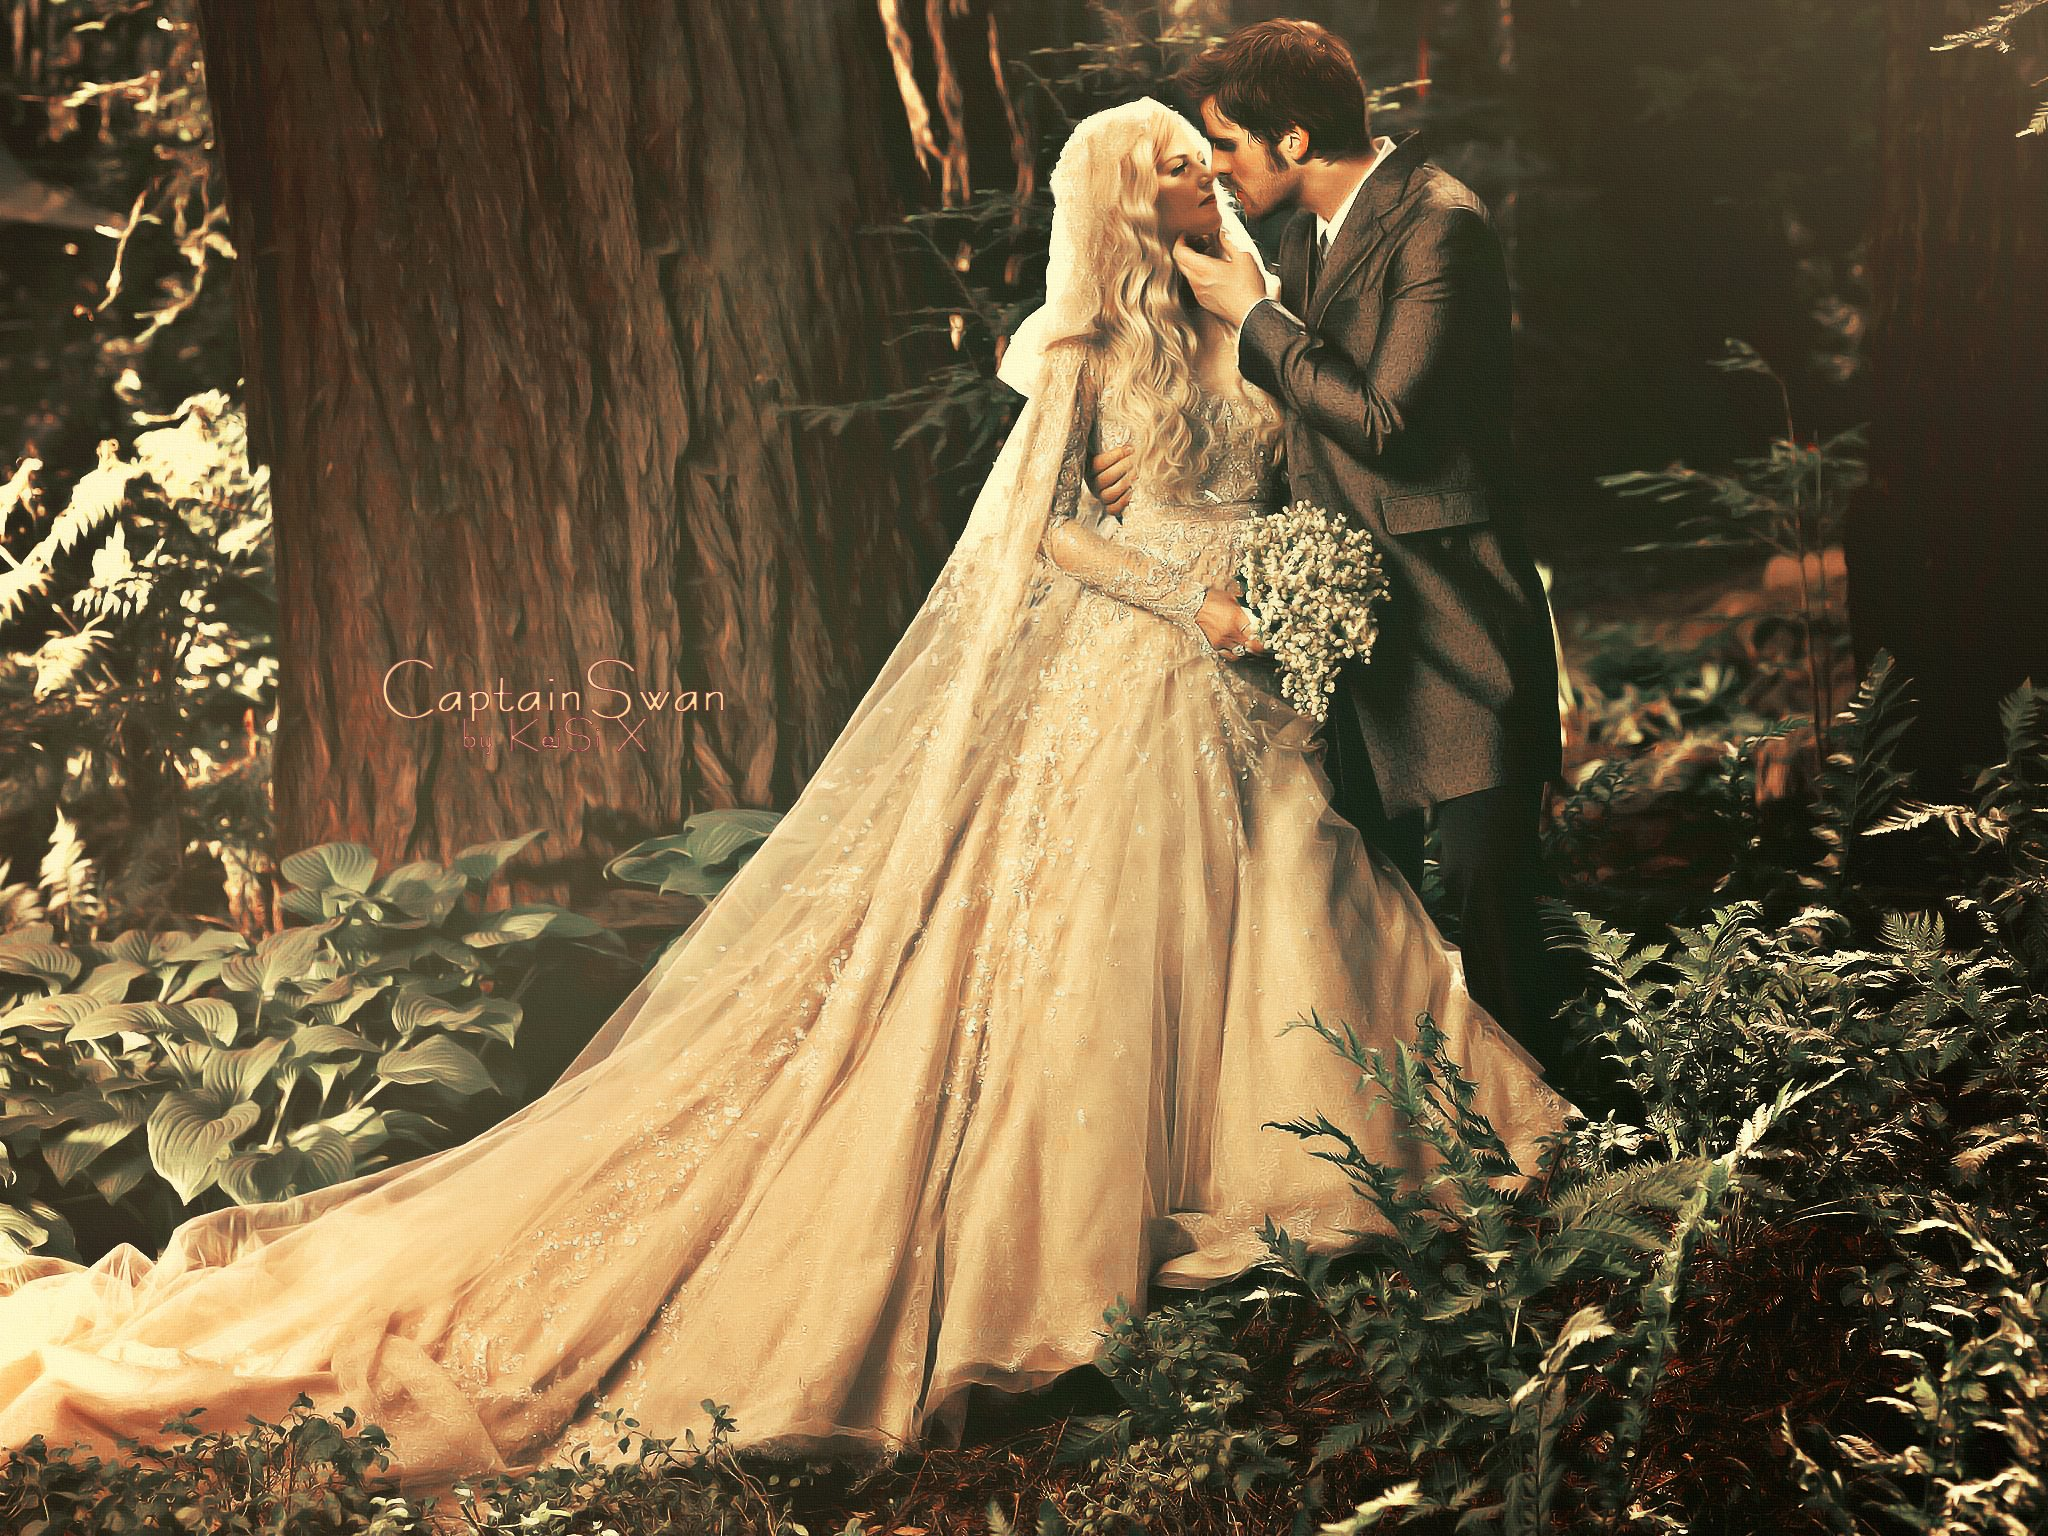 Captain Swan by KeiSi X 2048x1536